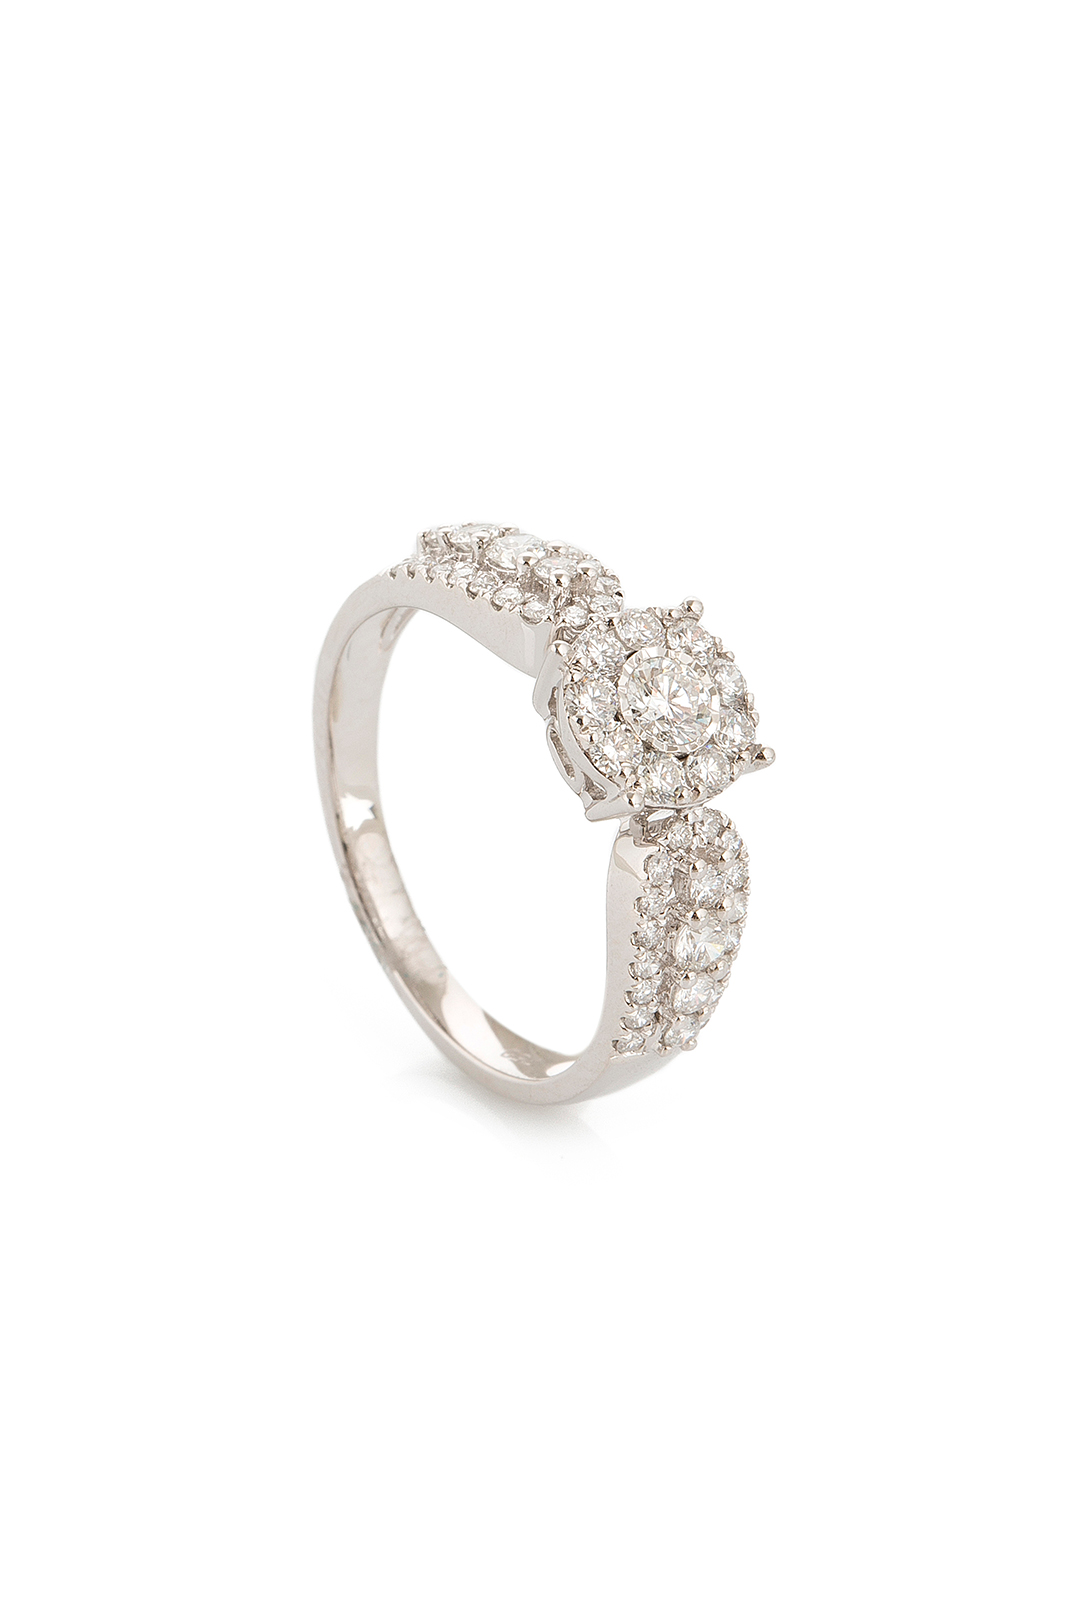 AUDREY DIAMOND RING